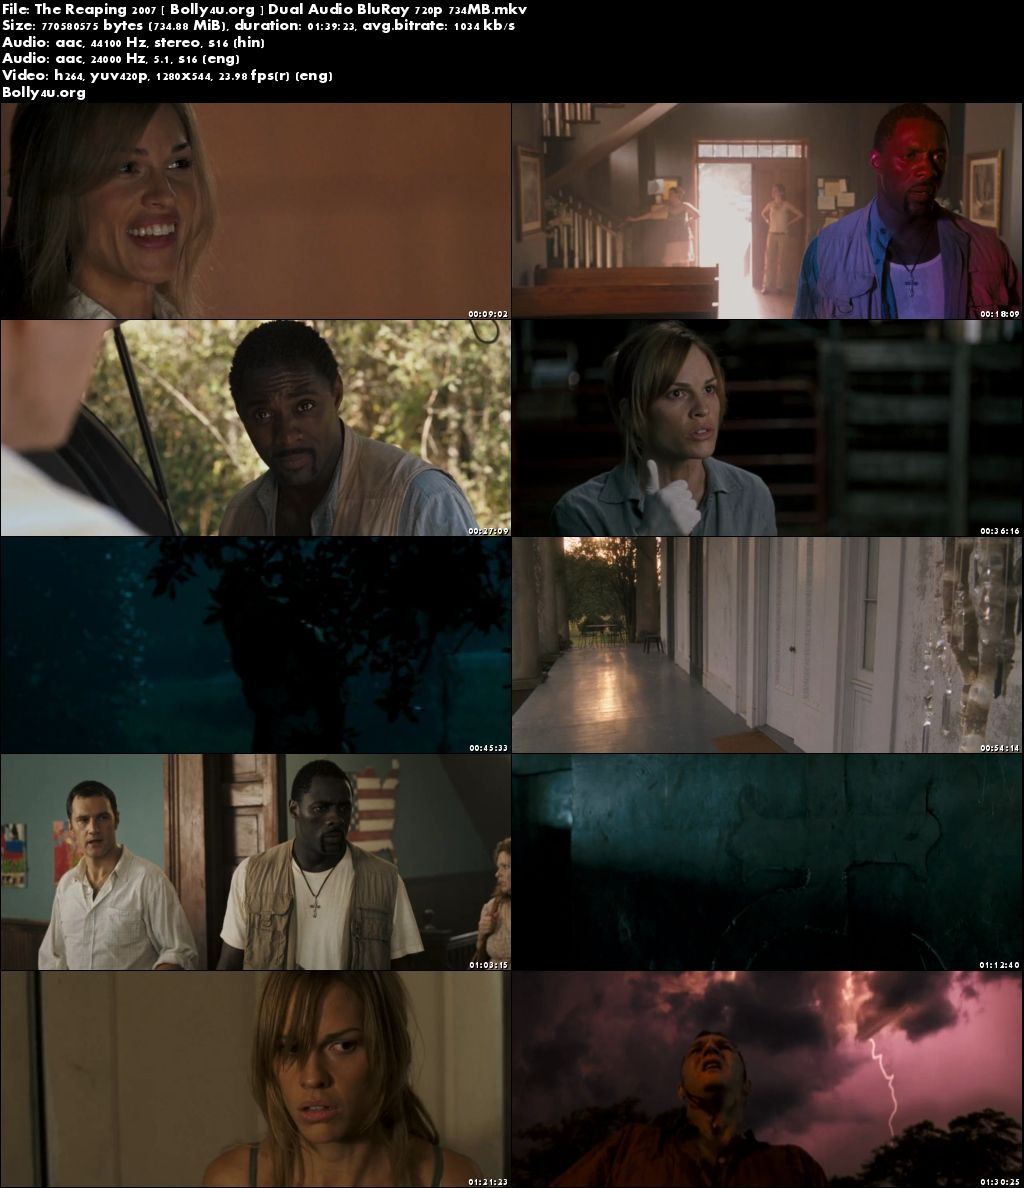 The Reaping 2007 BluRay 700Mb Hindi Dual Audio 720p Download